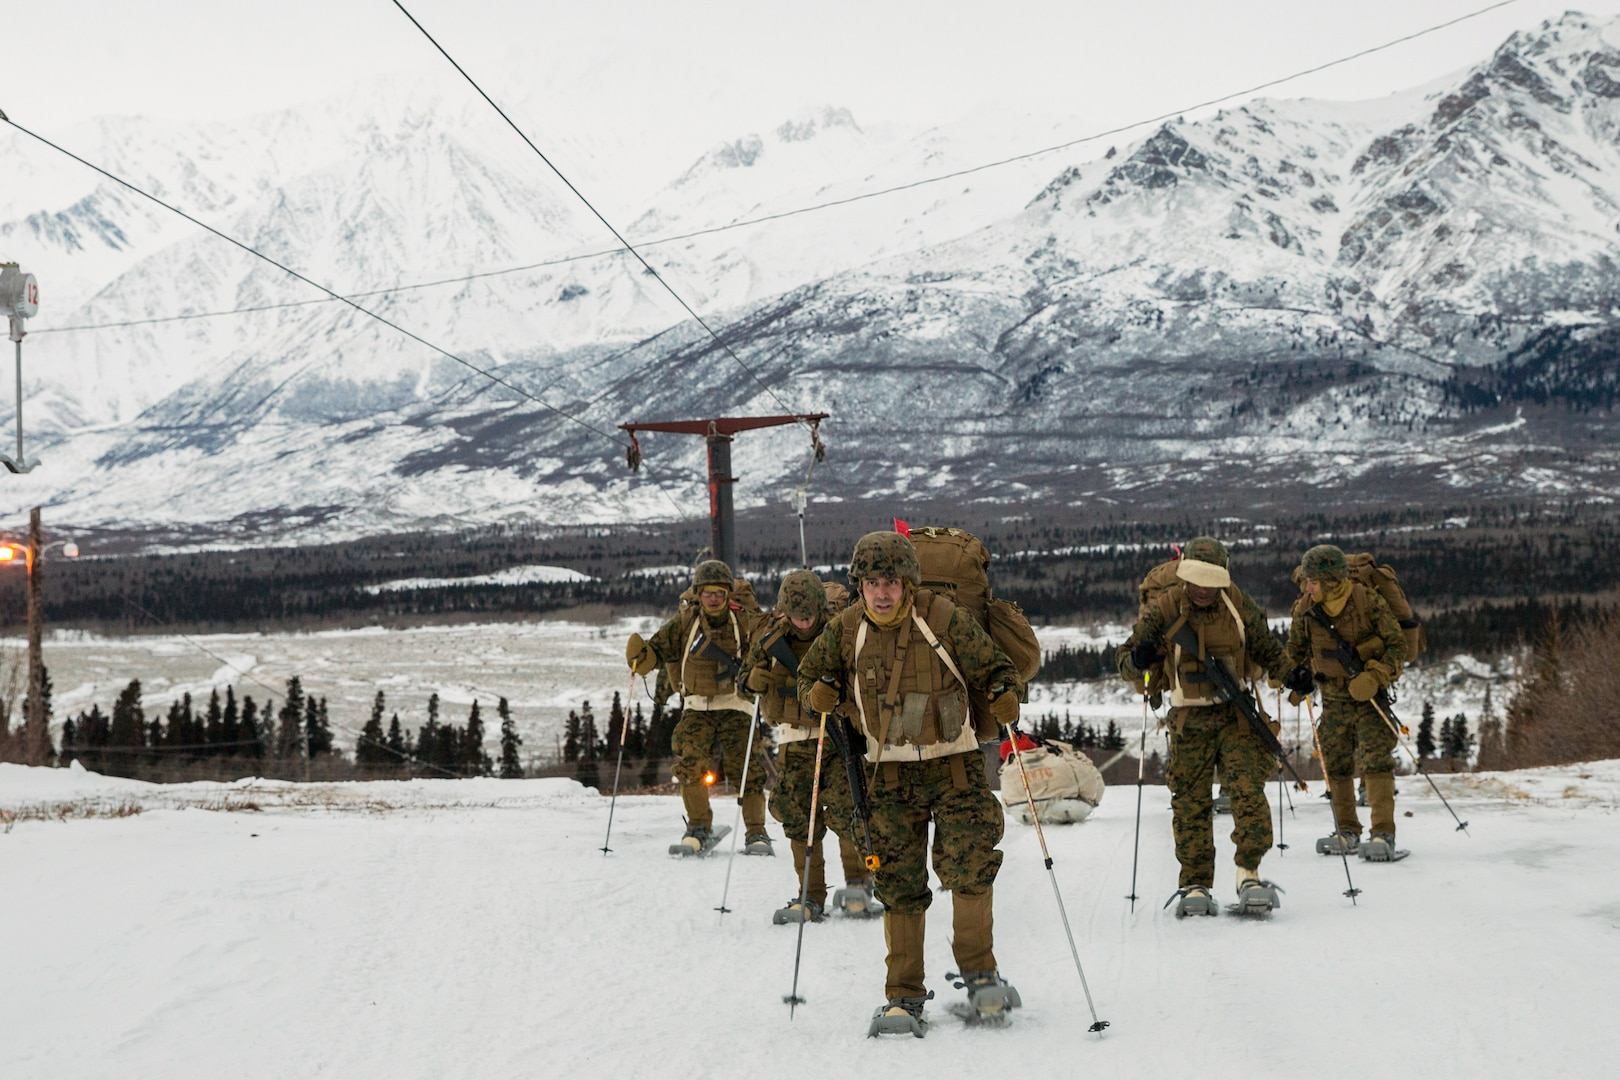 Marines with Combat Logistics Regiment 25, 2nd Marine Logistics Group, tow Ahkio sled containing cold weather gear, at U.S. Army Northern Warfare Training Center, Alaska, February 20, 2018 (U.S. Marine Corps/Sean M. Evans)